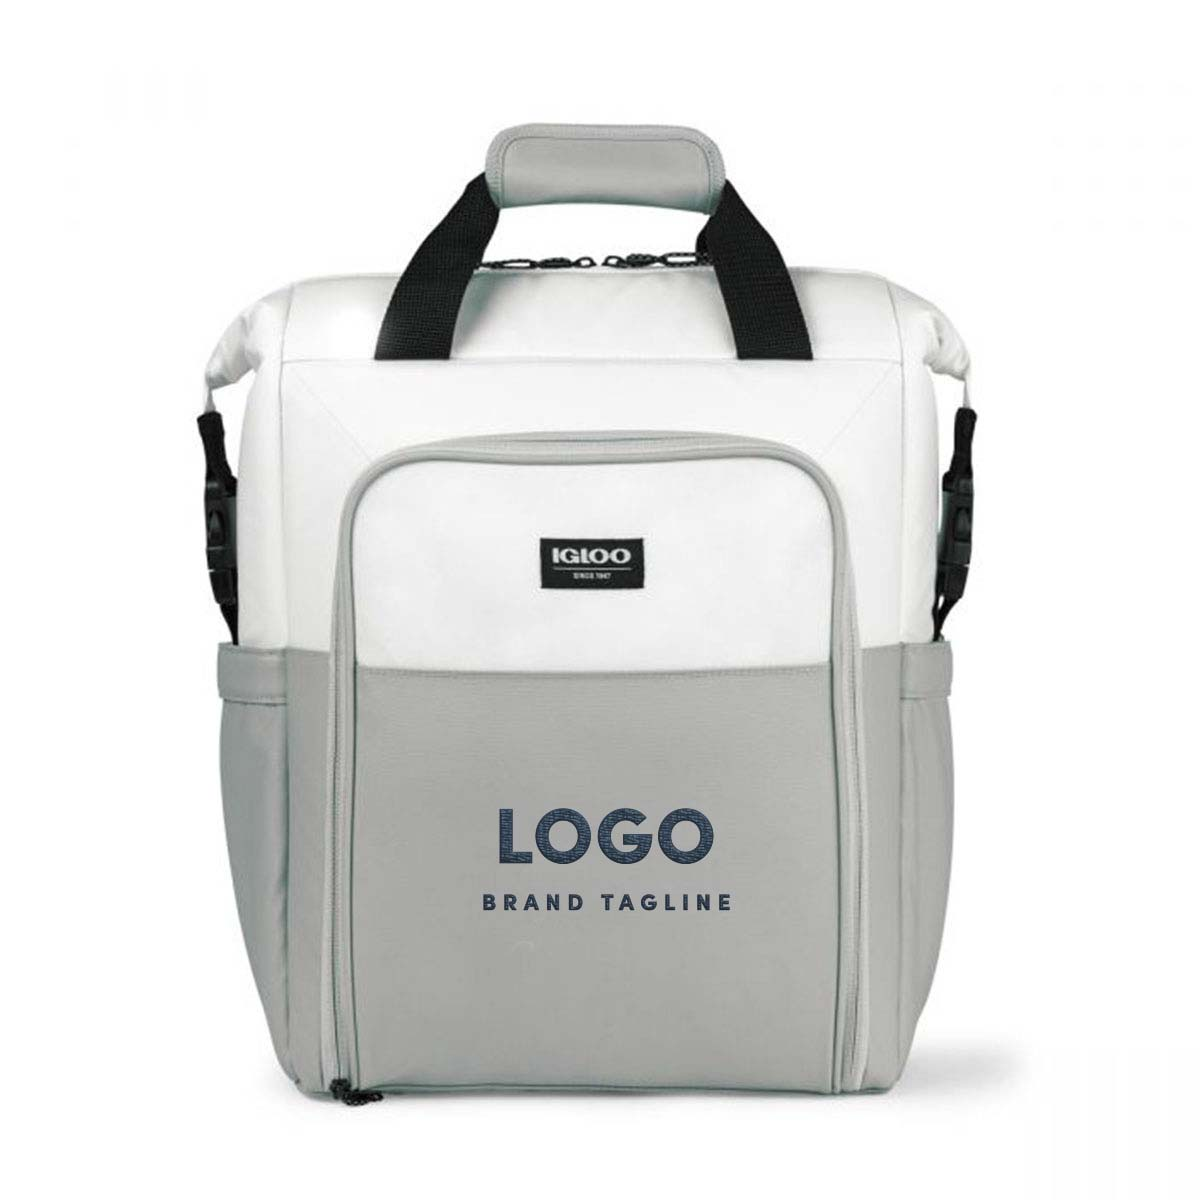 313908 transform backpack cooler embroidered up to 10k stitches one location